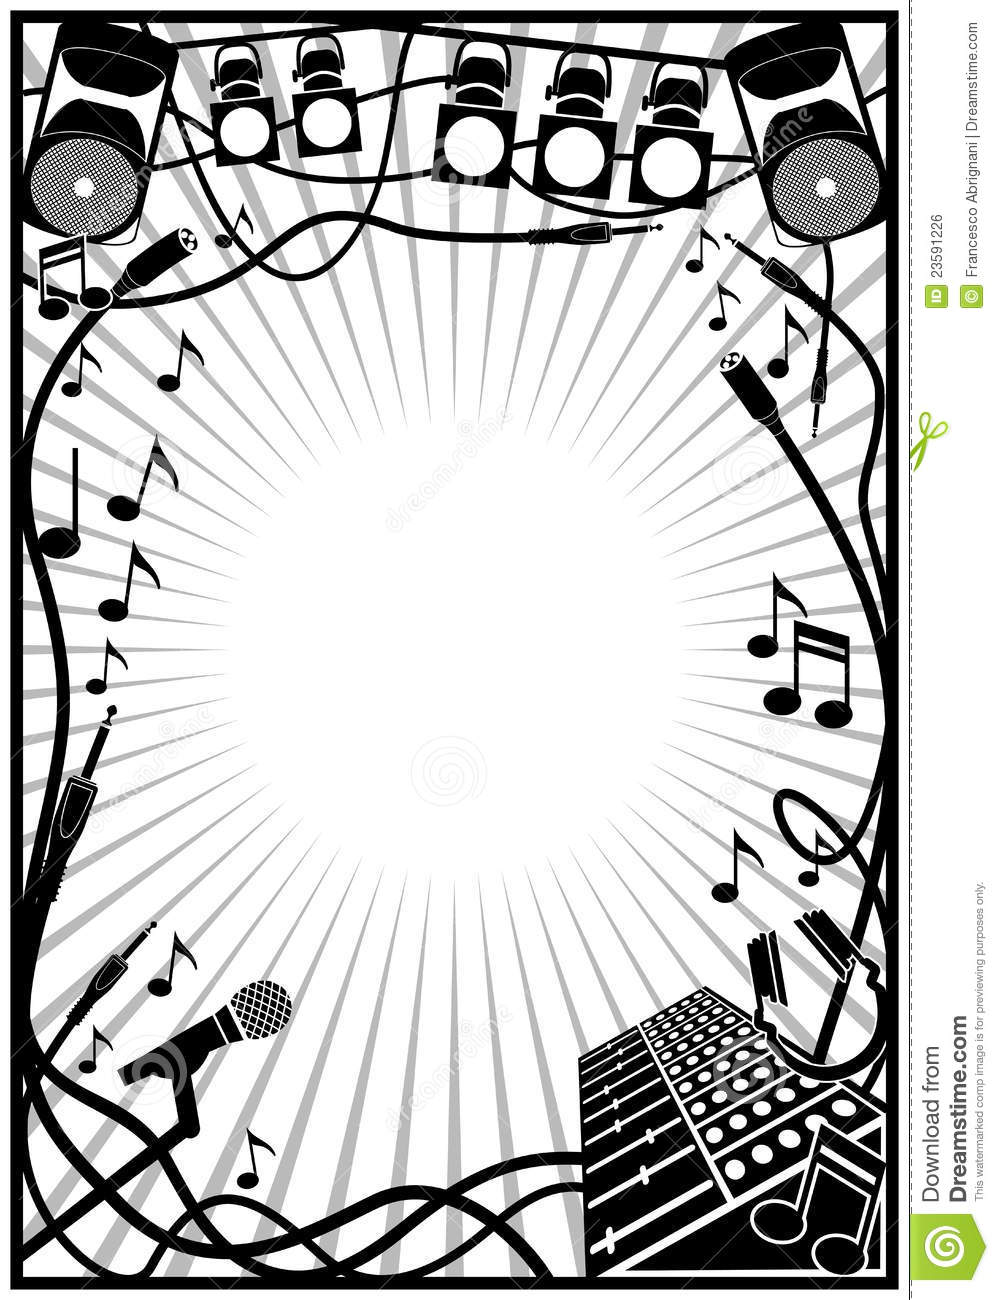 Music frame stock vector. Illustration of abstract, creative - 23591226